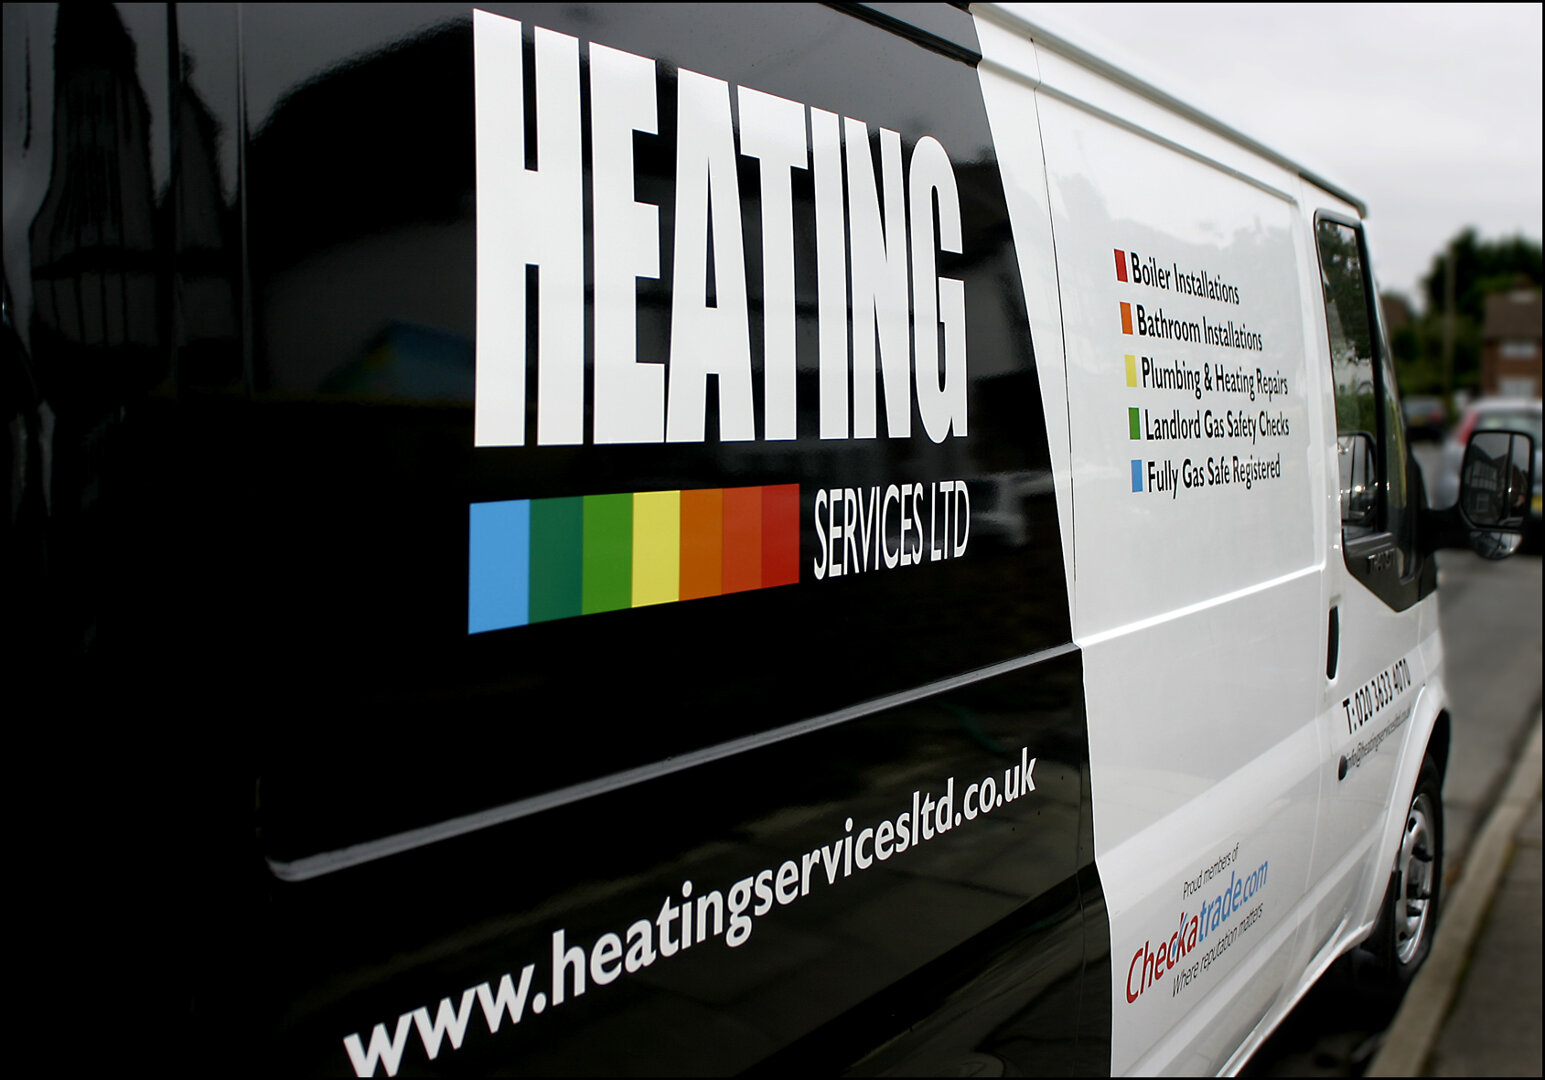 Plumbers Boiler Installation Service and Repairs and Bathroom Design and Installation by Heating Services Ltd in Edenbridge (2)